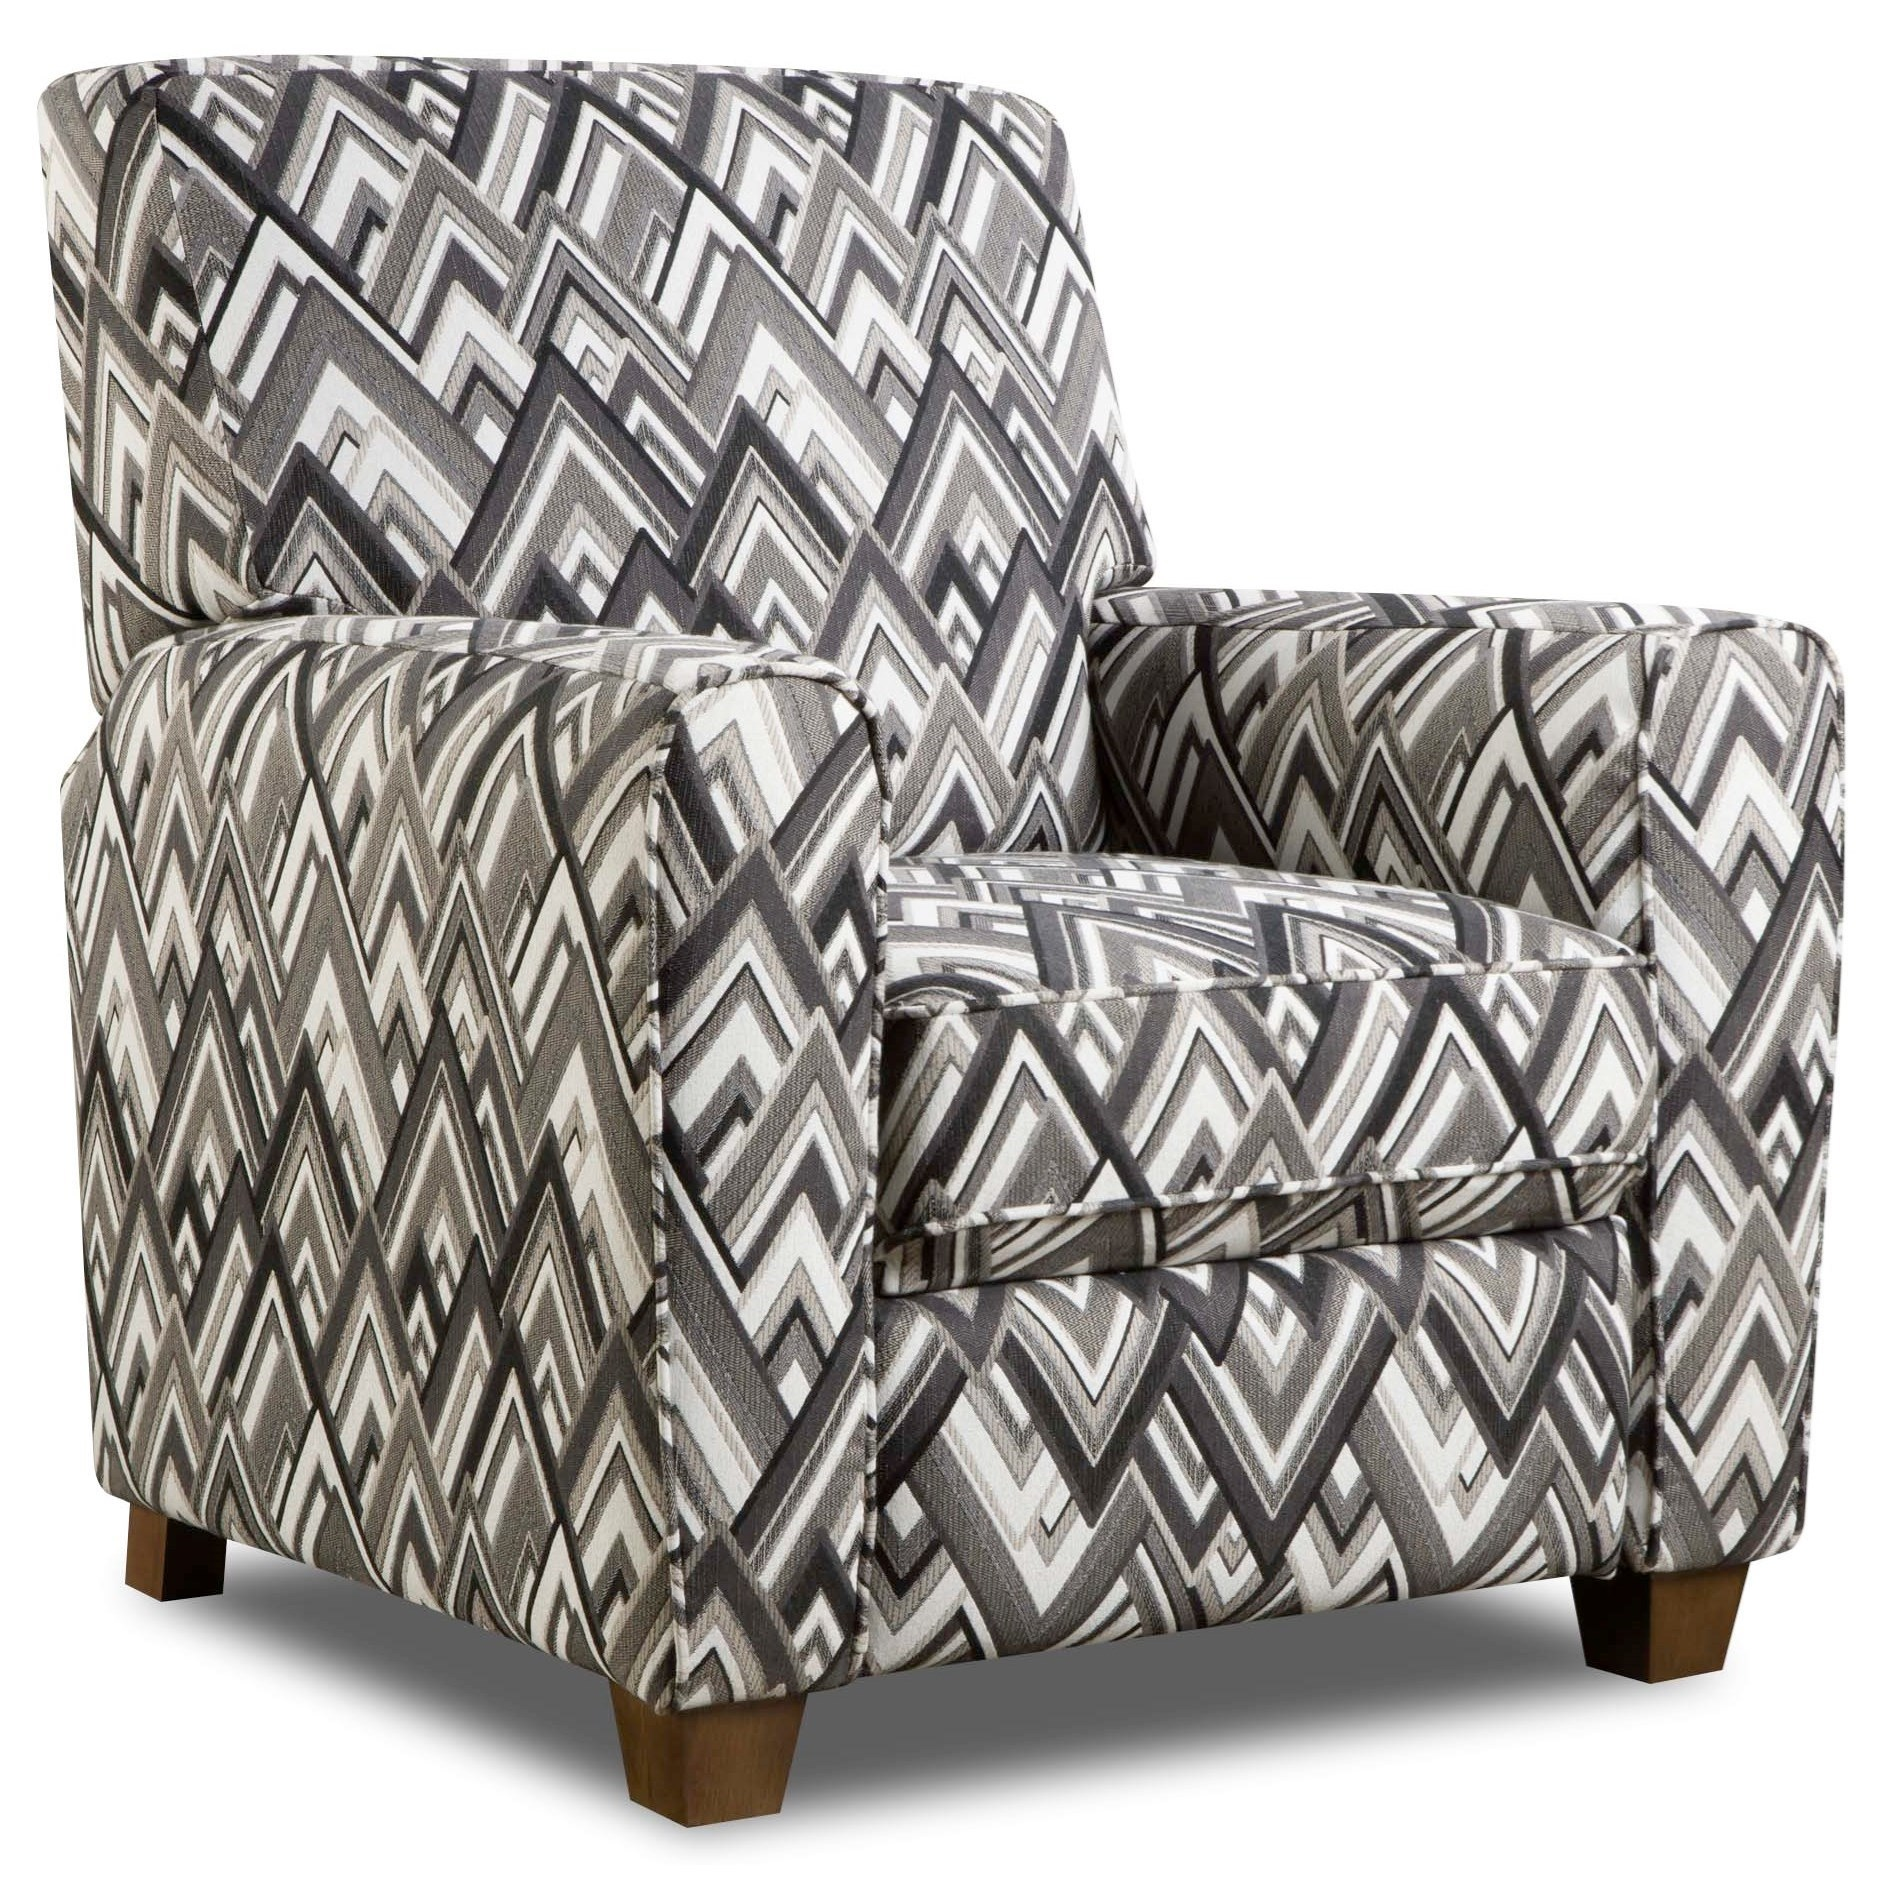 2460 Recliner by Peak Living at Prime Brothers Furniture